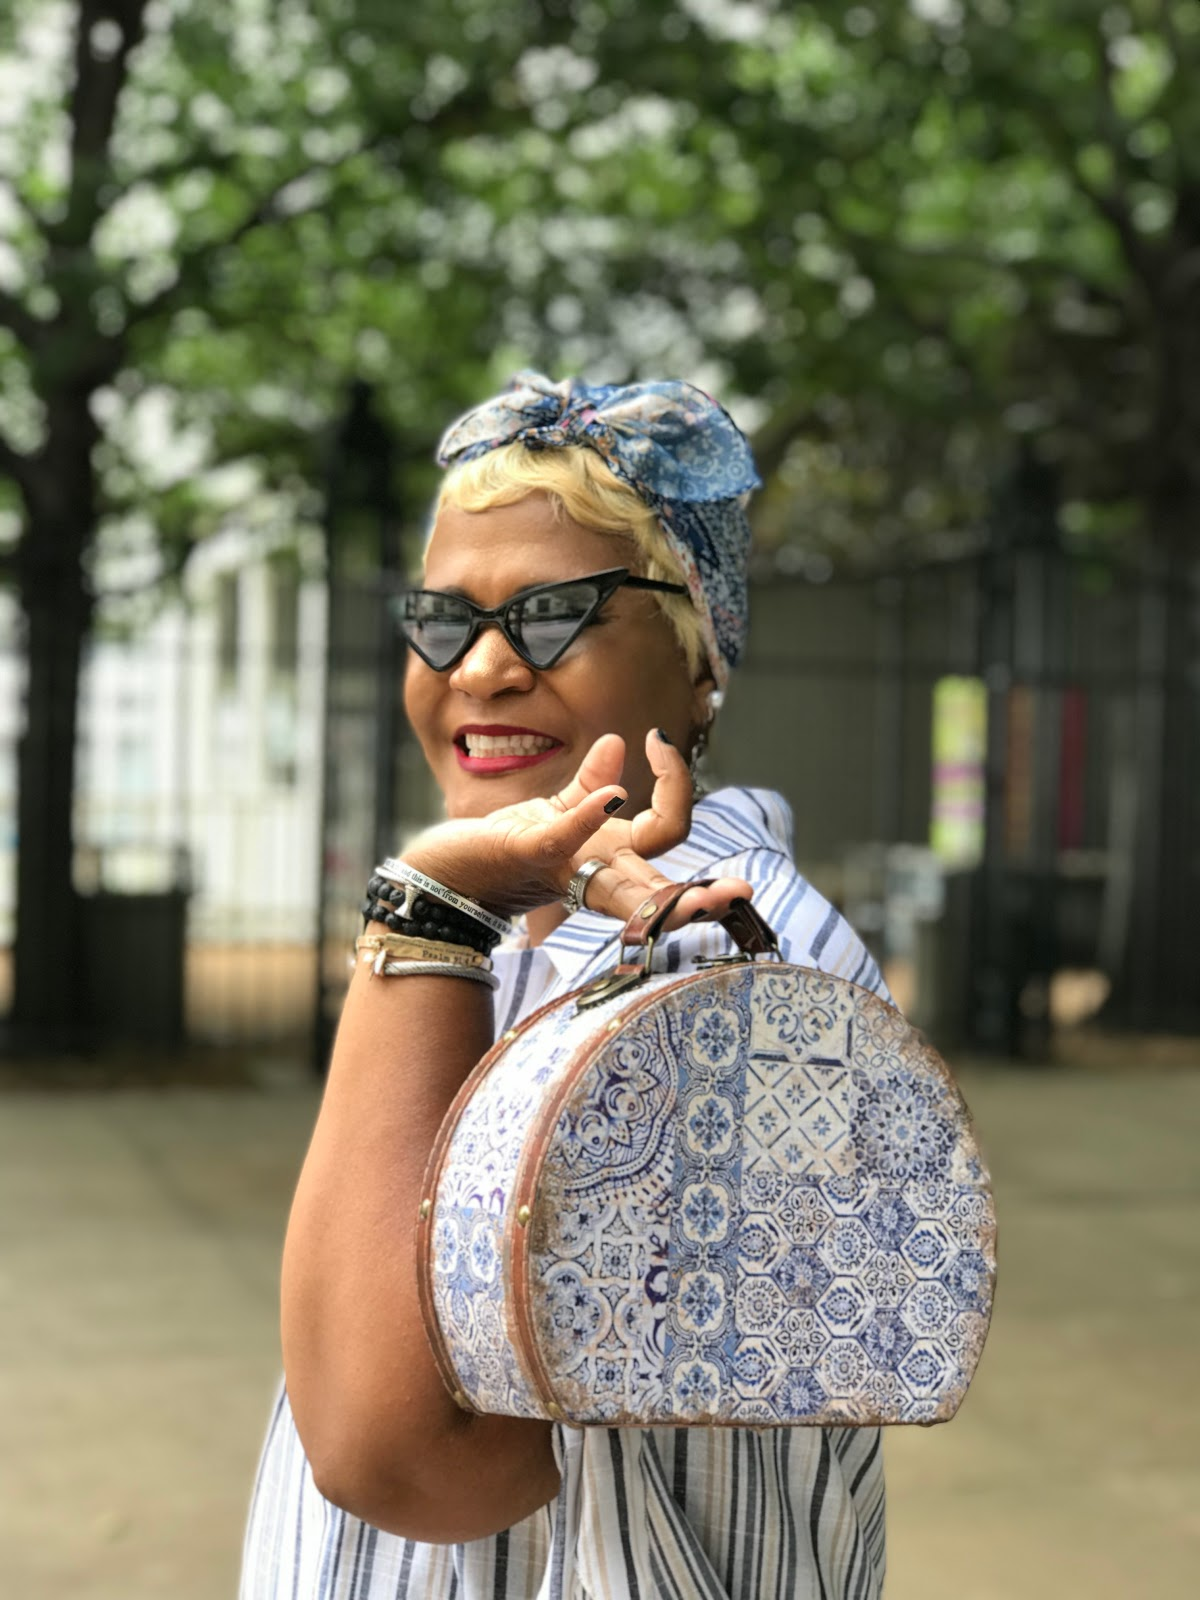 Image: Tangie Bell is showing her handbag, glasses and outfit. Seen first on Bits and Babbles Blog